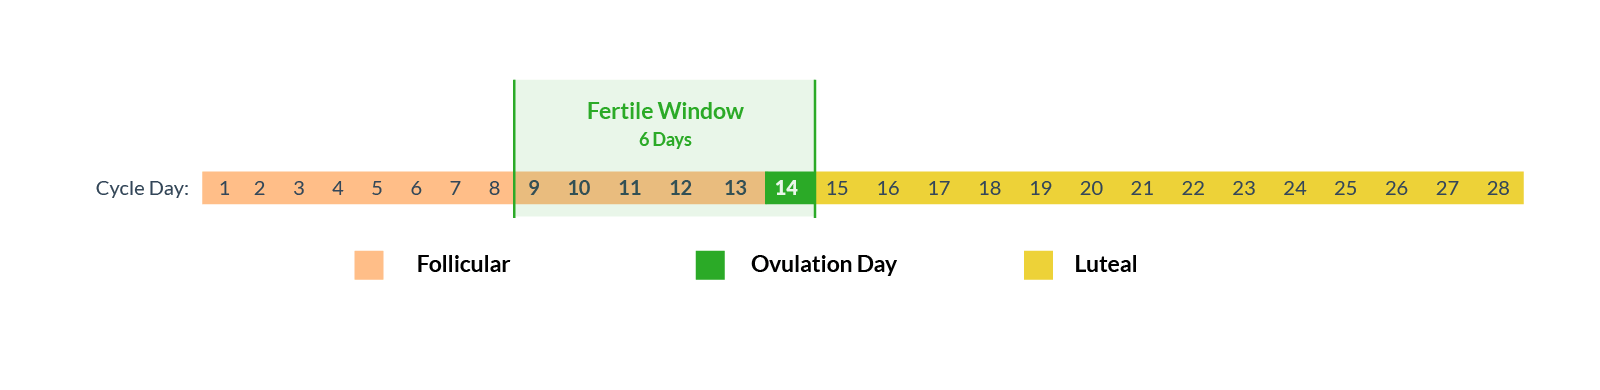 Fertile window ovulation